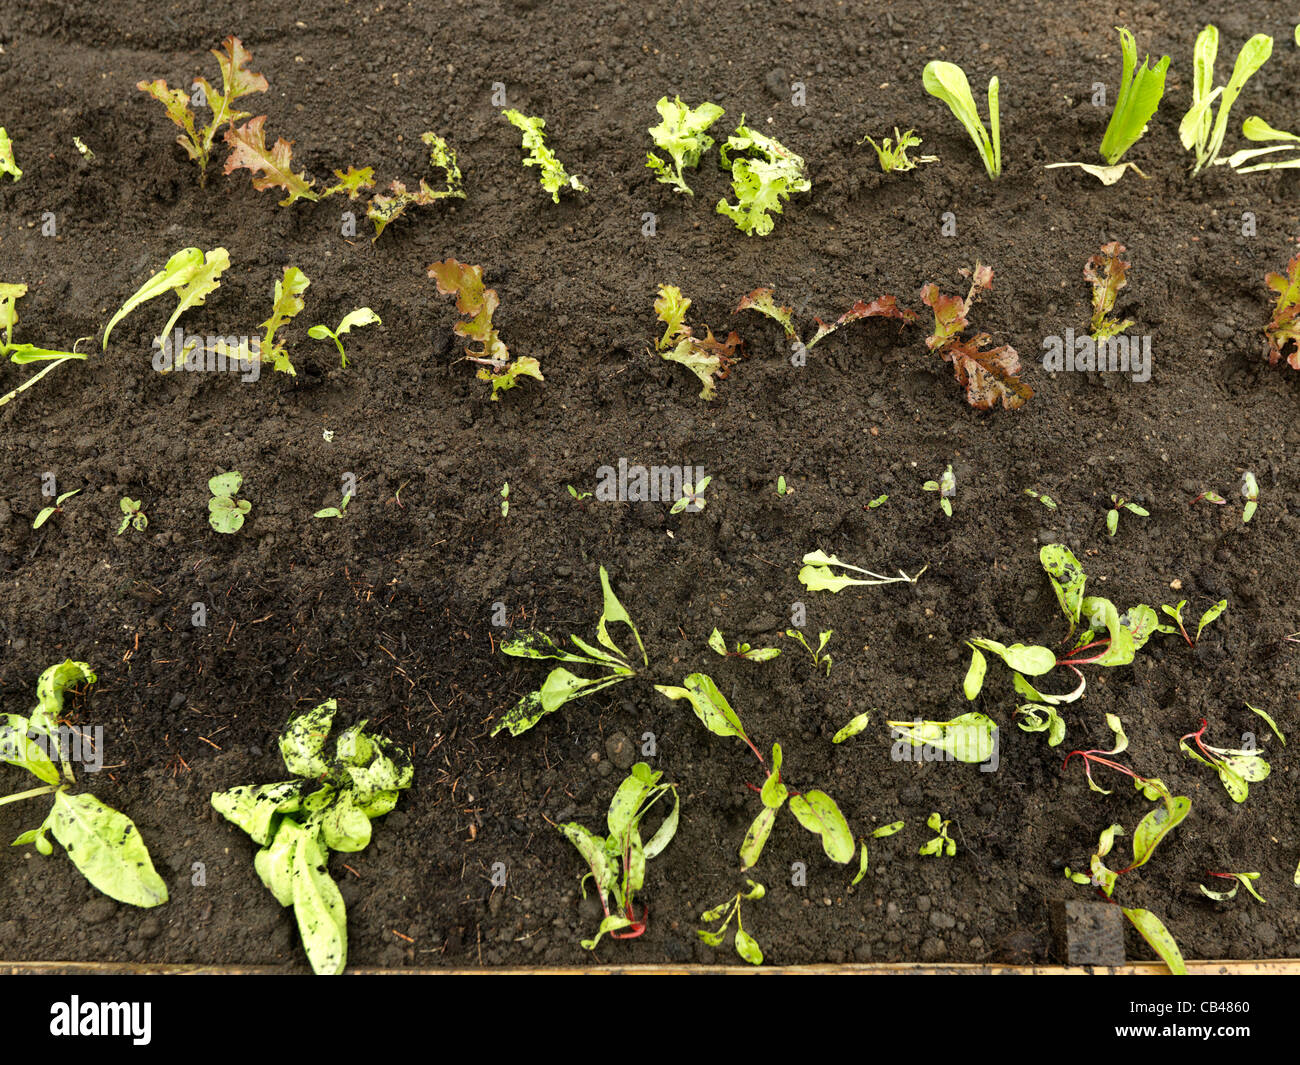 Newly Transplanted Lettuce Spinach & Chard in a New Raised Bed In ...